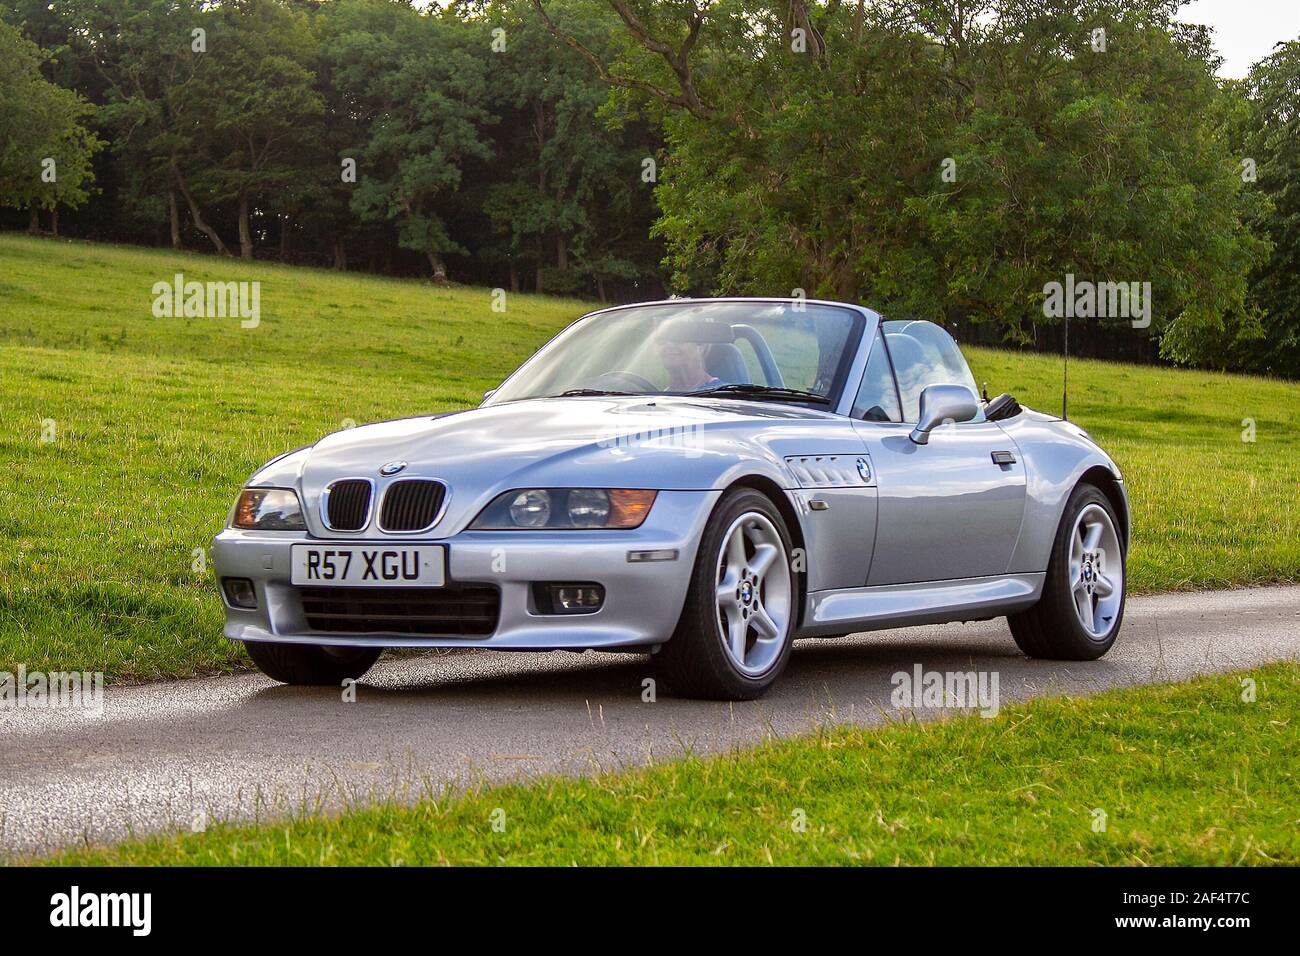 Bmw Z3 High Resolution Stock Photography And Images Alamy